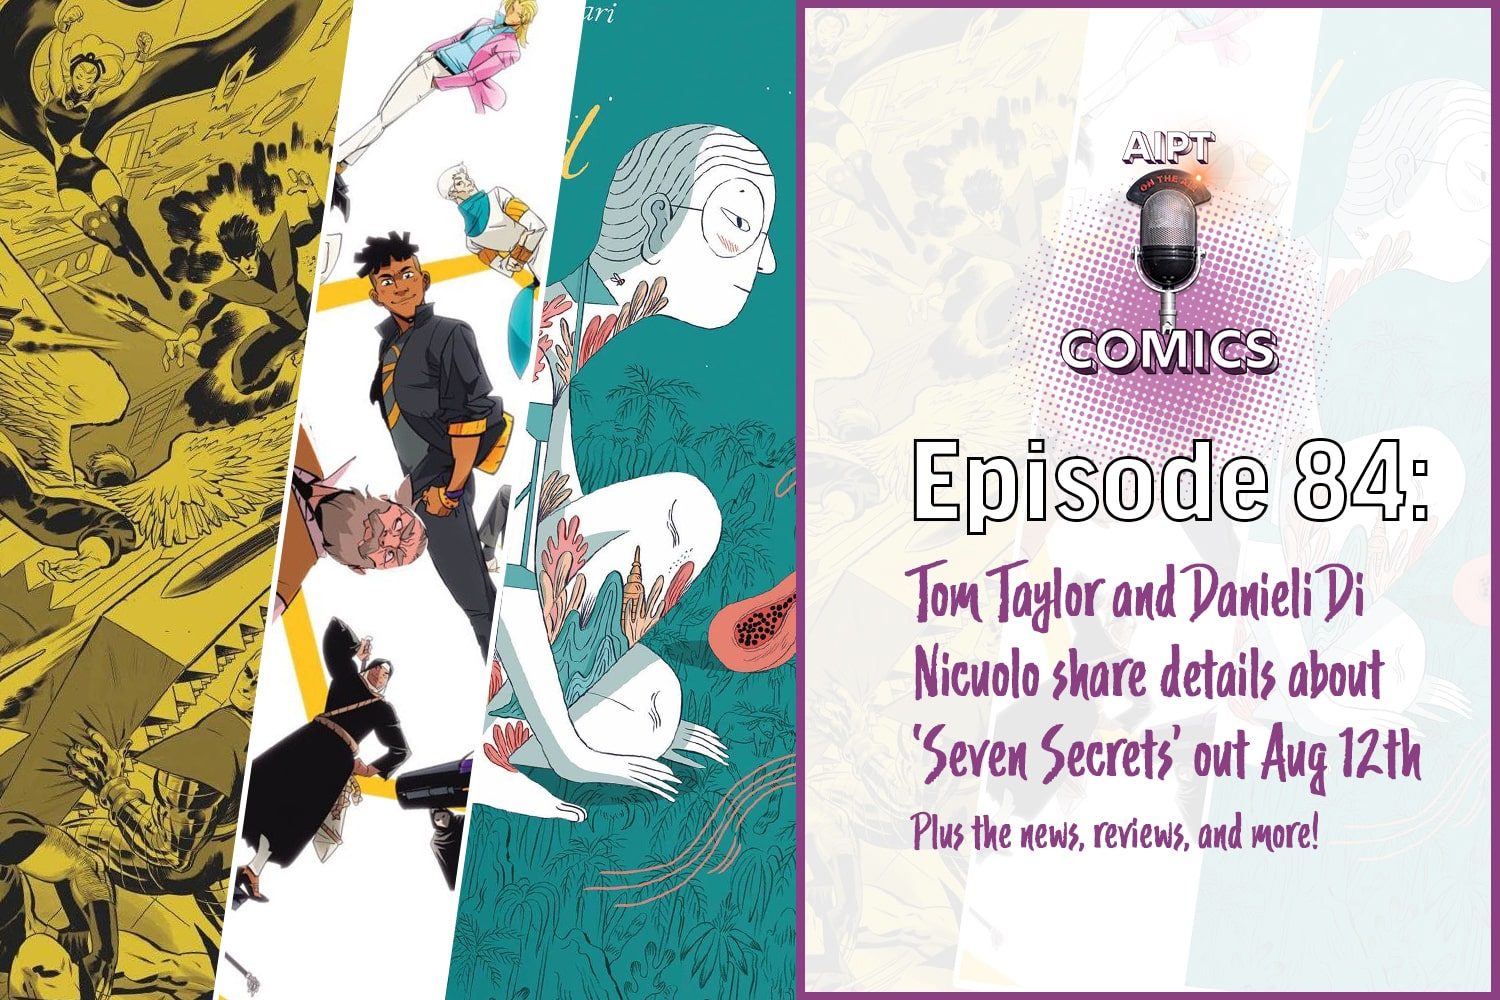 AIPT Comics Podcast Episode 84: Tom Taylor and Danieli Di Nicuolo talk 'Seven Secrets'